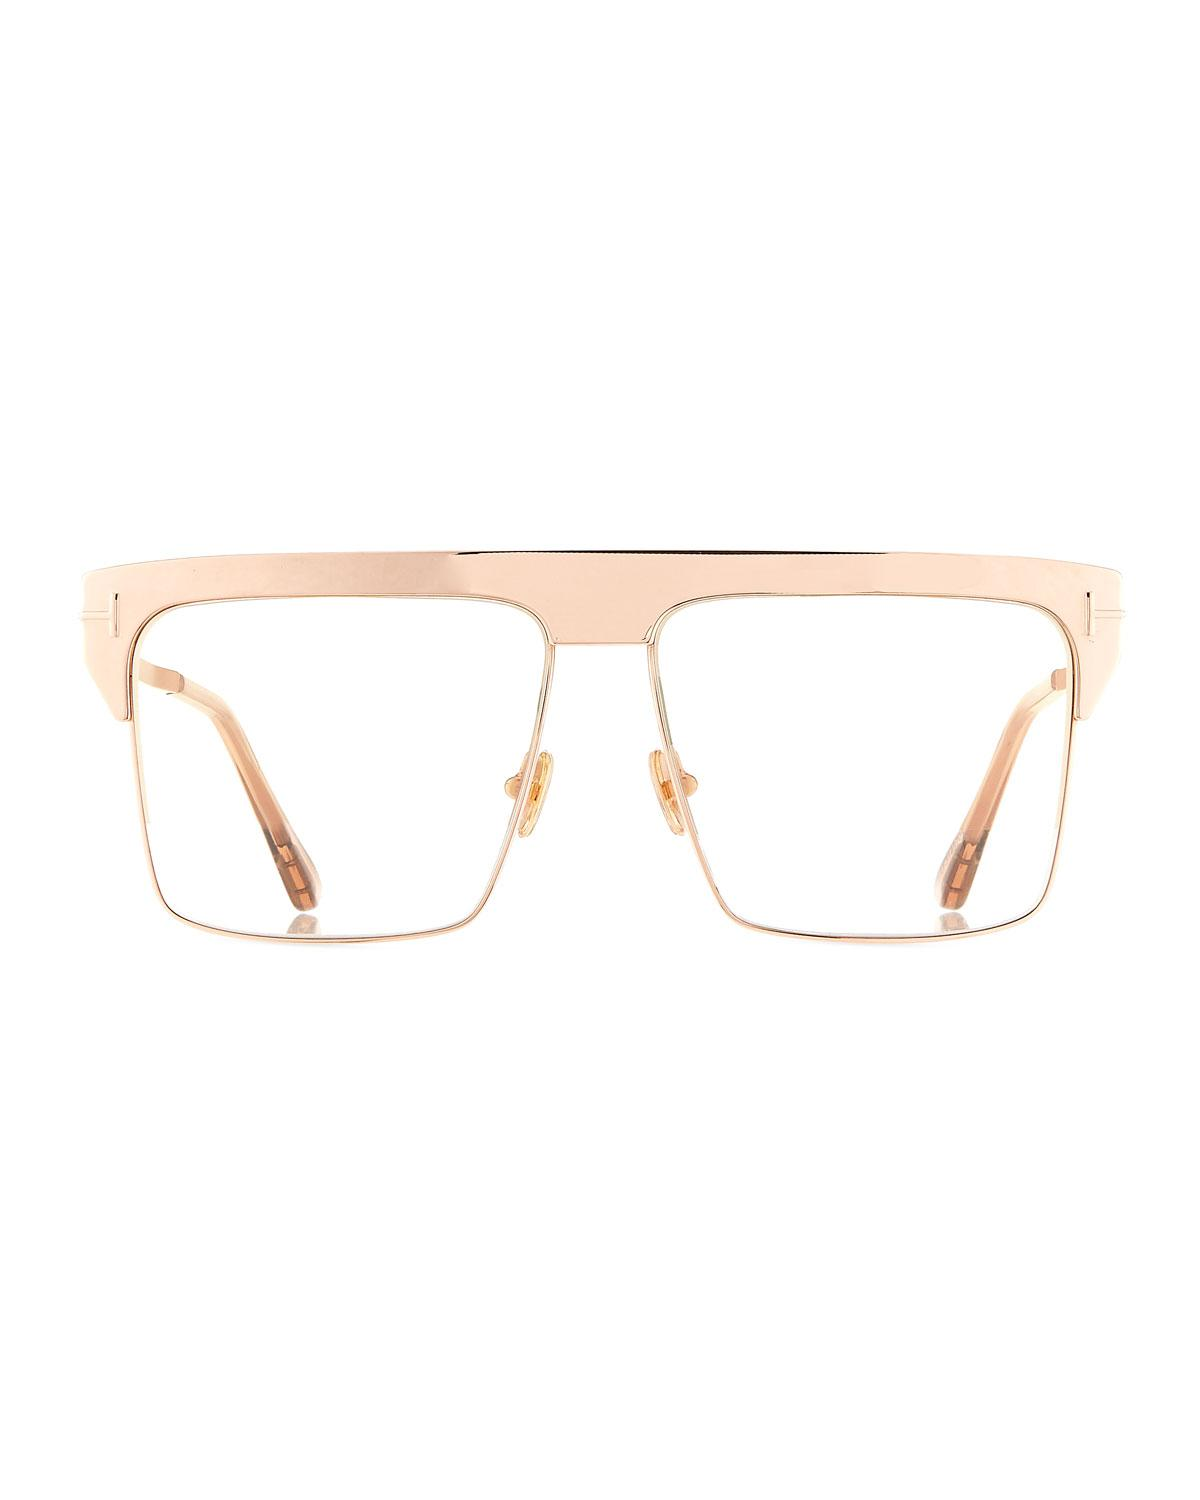 61b53488ec23 Lyst - Tom Ford Men s West Two-tone Mirrored Square Sunglasses in Pink